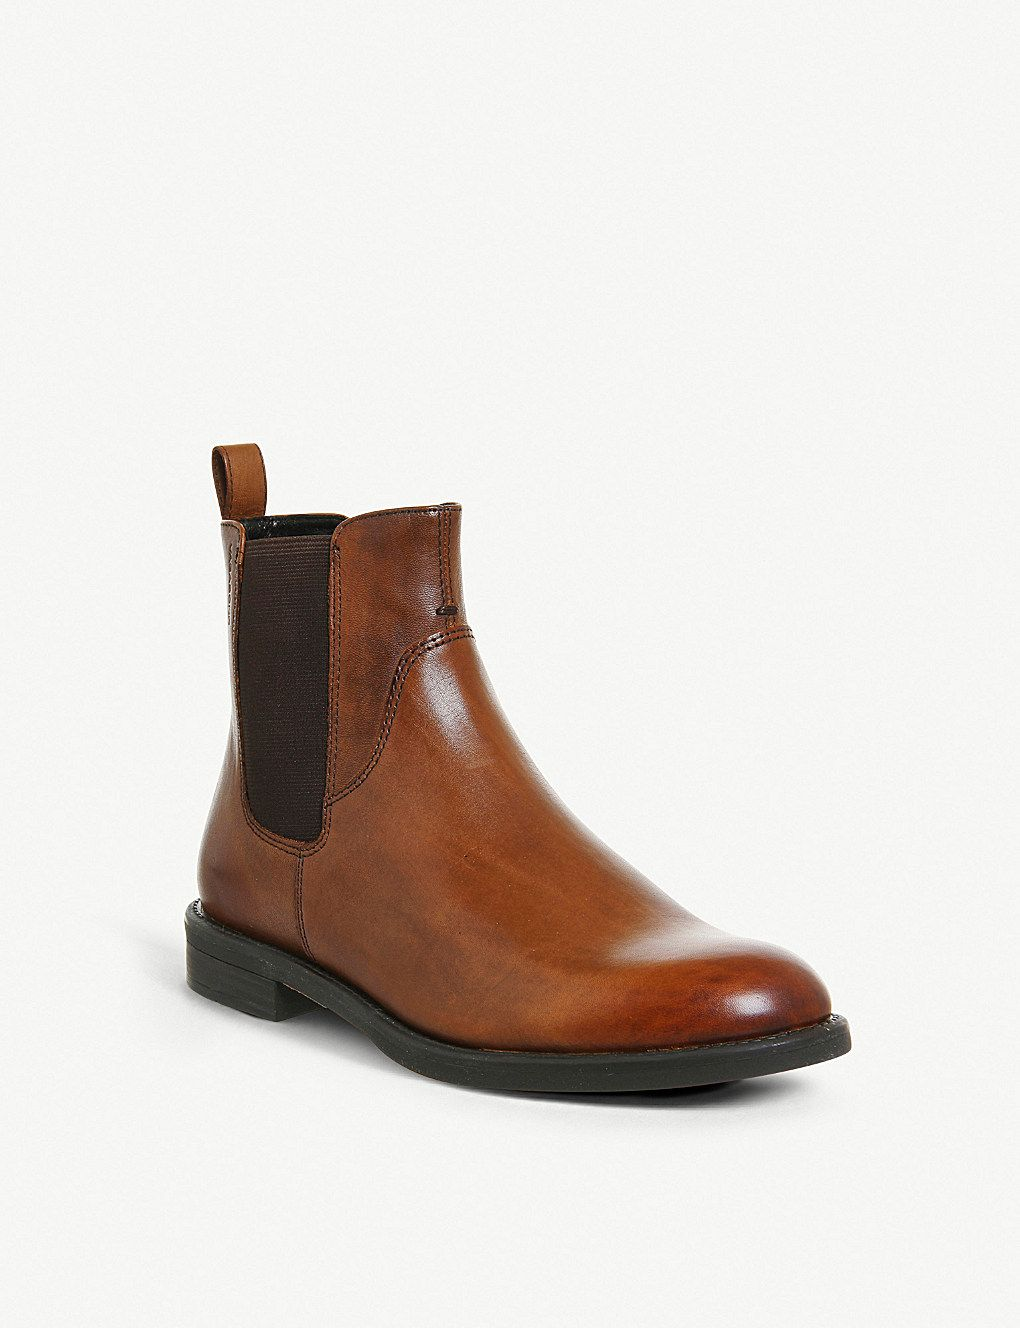 1118bcc9034 VAGABOND Amina Chelsea leather boots | Shopping | Boots, Leather ...